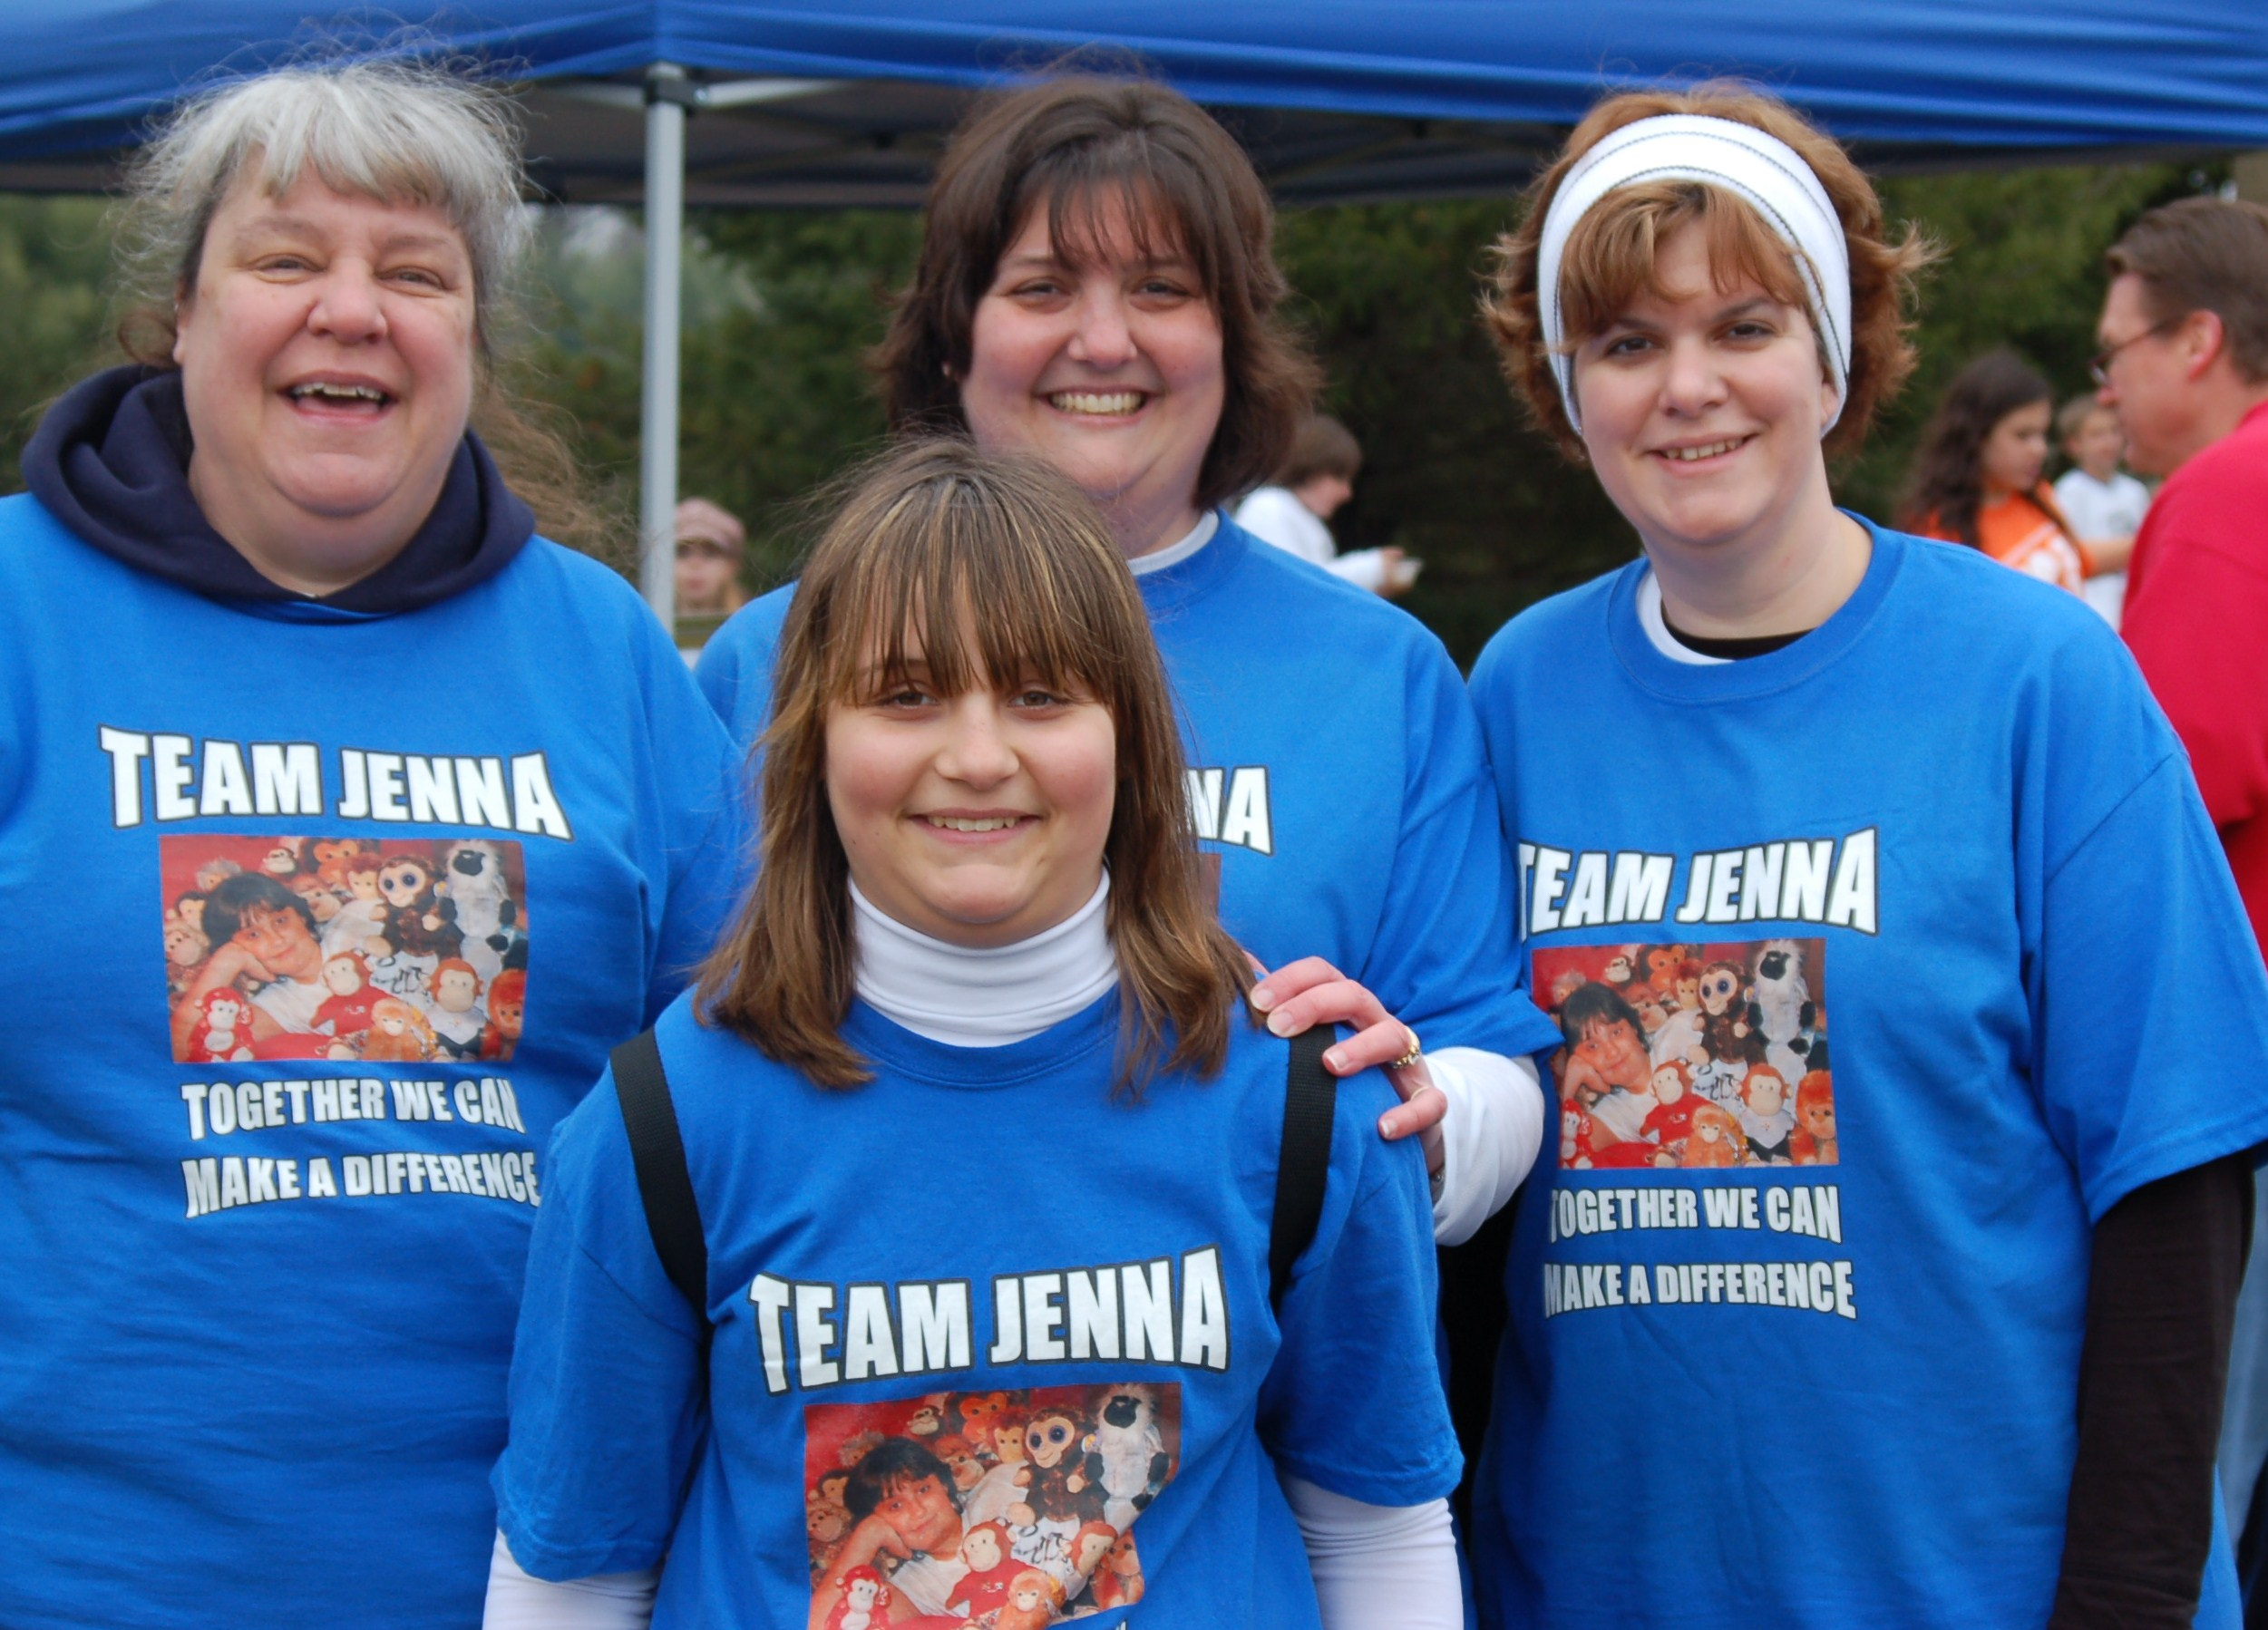 Custom t shirts for team jenna jdrf shirt design ideas for Jdrf one walk t shirts